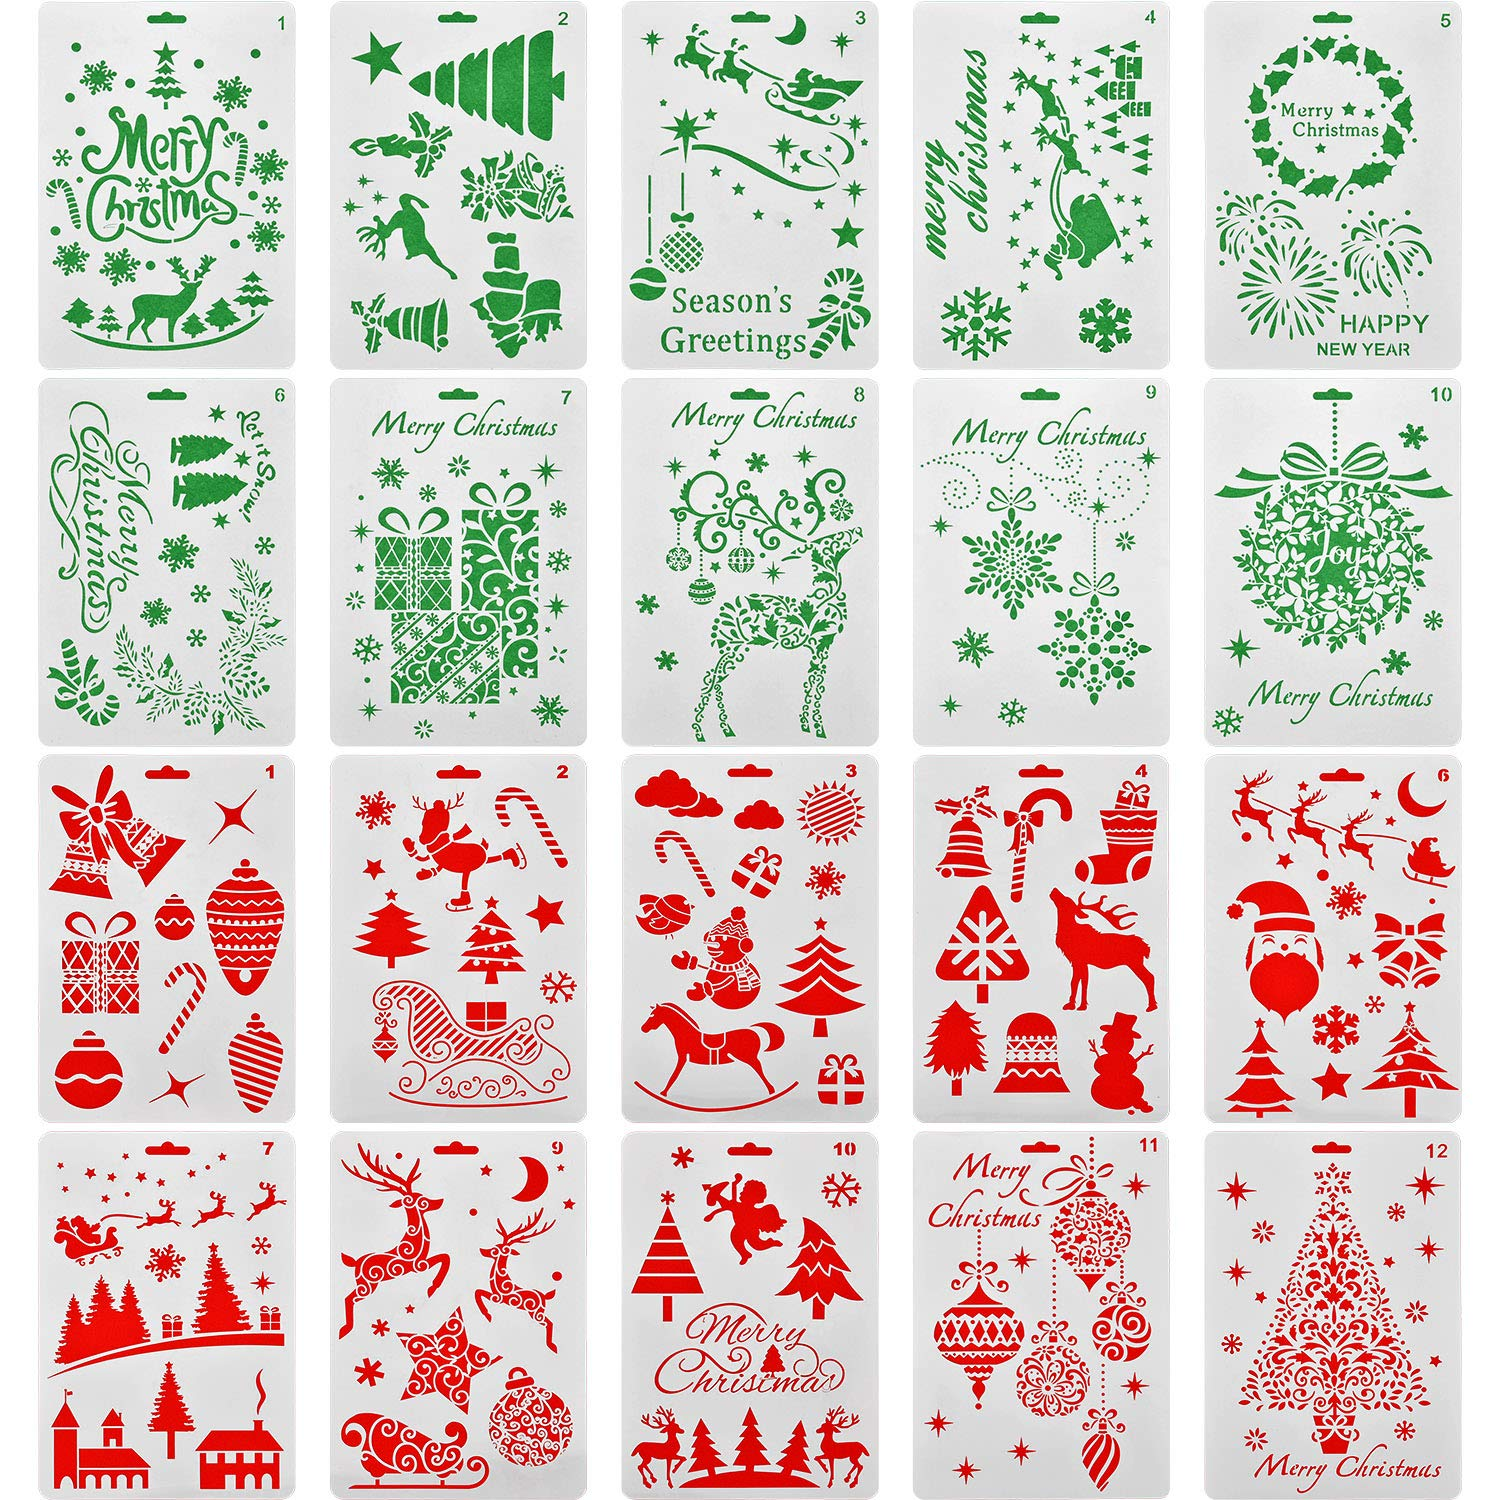 Jovitec 20 Pieces Christmas Stencils Journal Template Painting Stencil for Notebook Christmas Gift Card DIY Projects, Assorted Styles by Jovitec